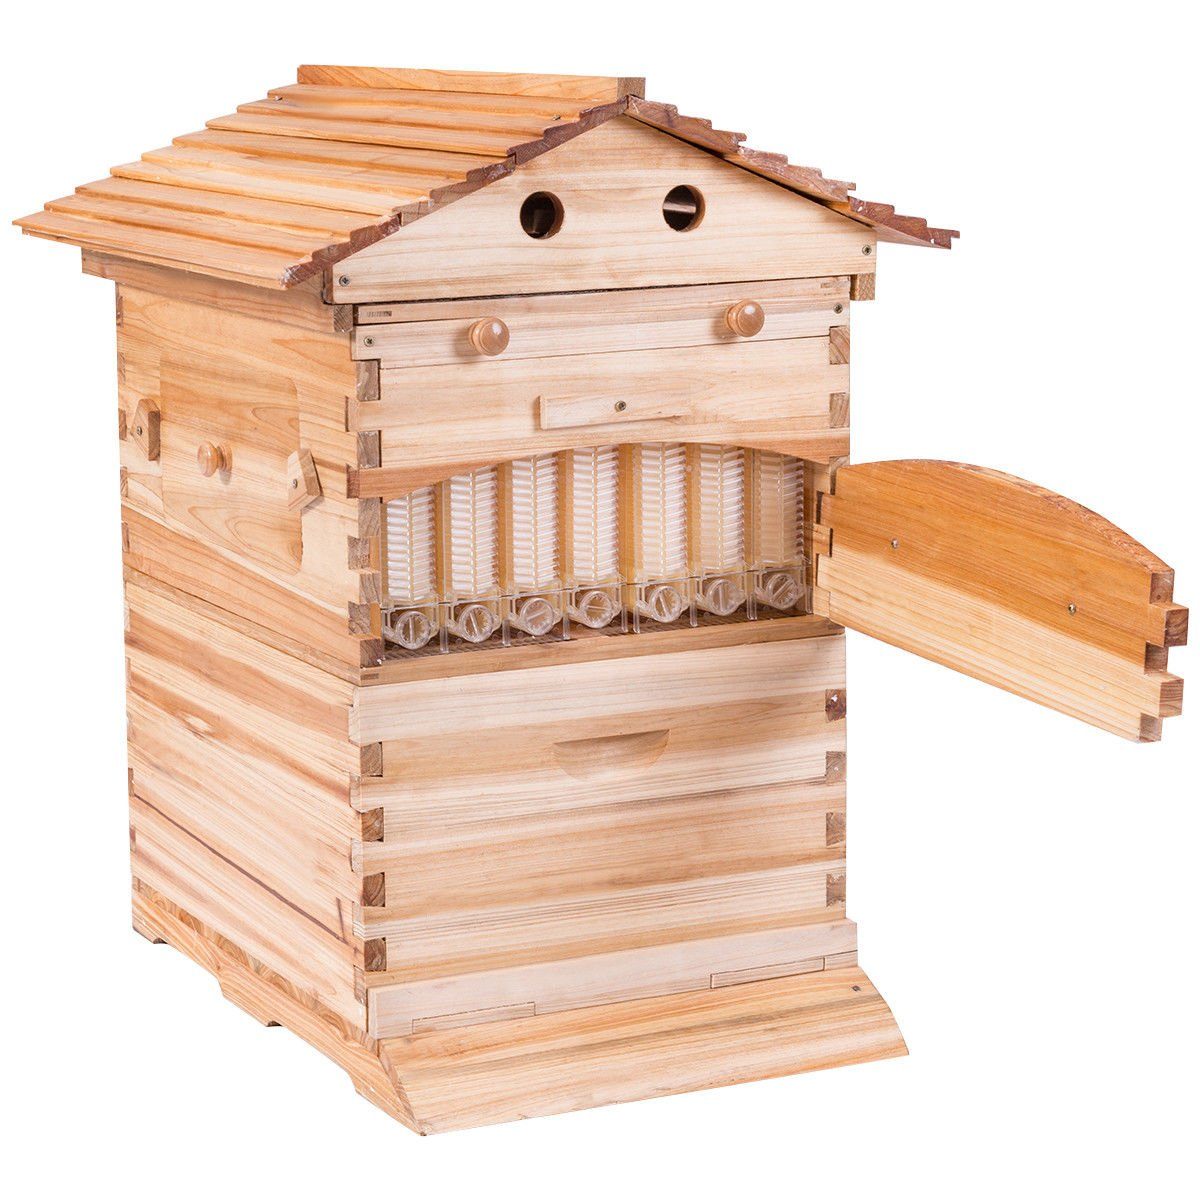 Goplus Beehive Frames Flow Honey Wooden Beehive House Bulk Automatic Honey Beehive Box Kit with 7 Standard Frames by Goplus